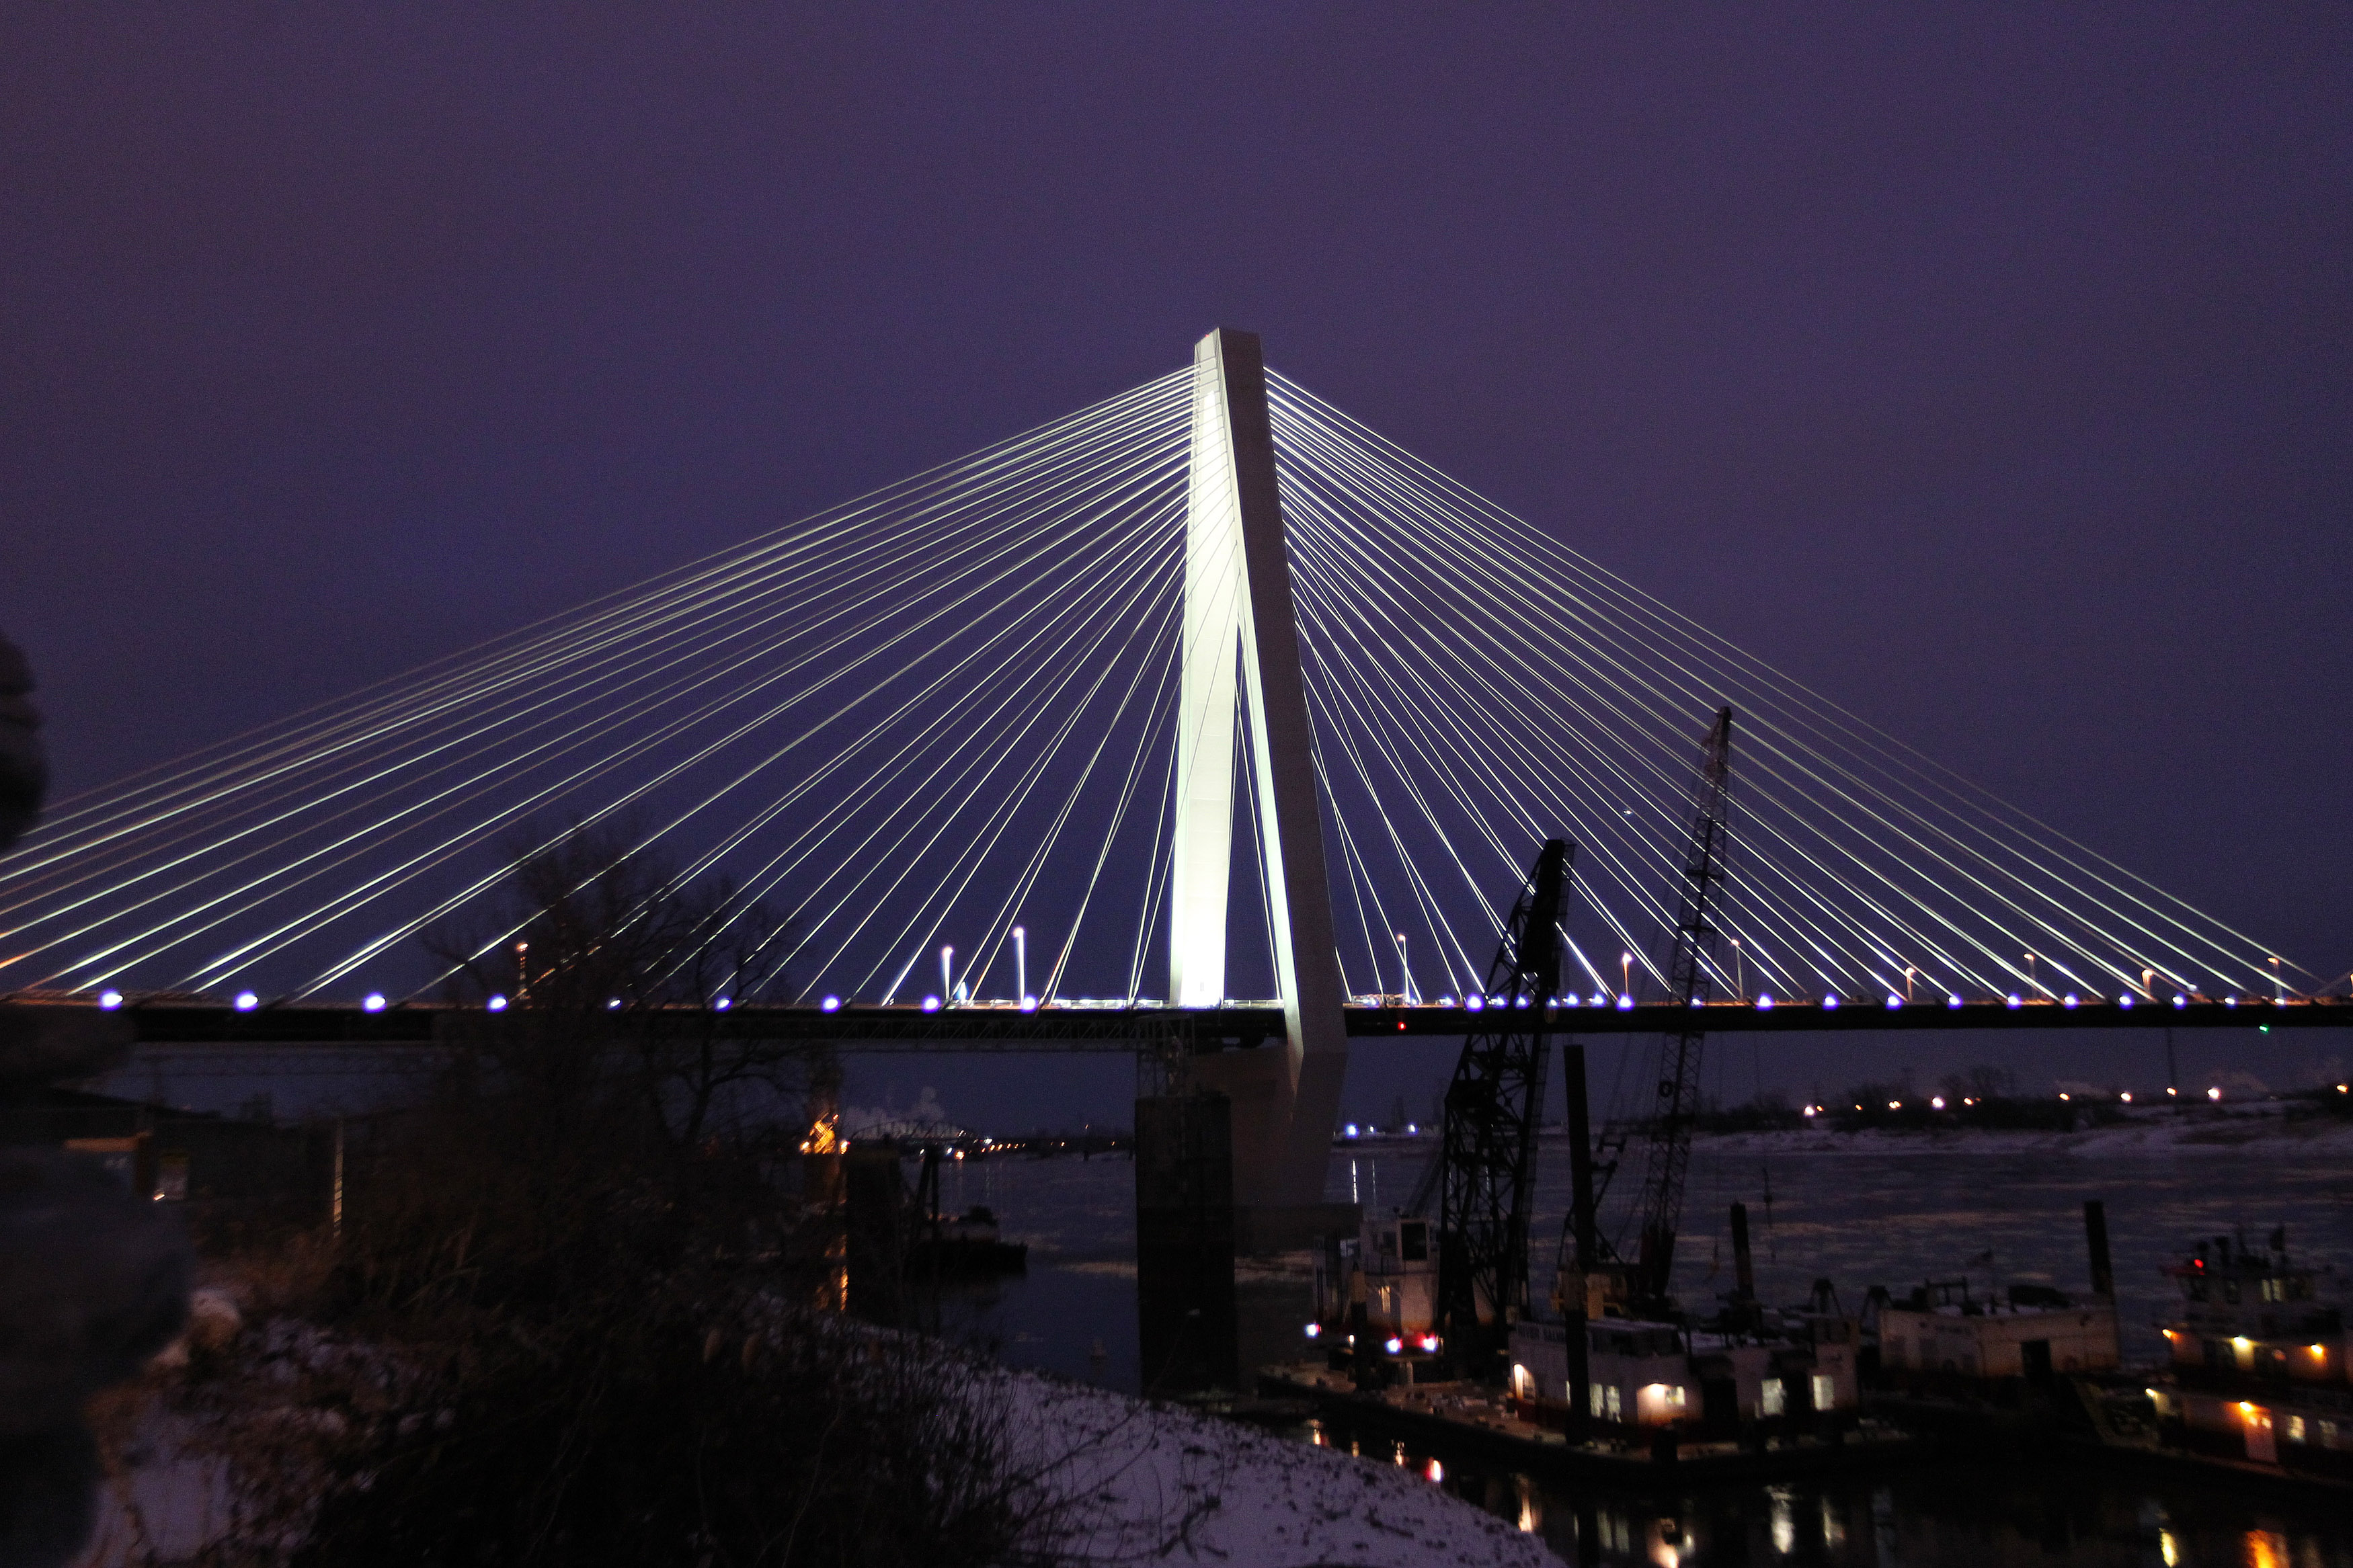 The Missouri span of the Stan Musial Veterans Memorial Bridge is lit for the first time as lights are switched on at dusk in St. Louis on February 7, 2014. The Musial Bridge, named after the late St. Louis Cardinals and National Baseball Hall of Fame member Stan Musial, will officially open to trafic on February 7, 2014 after four years of construction. UPI/Bill Greenblatt